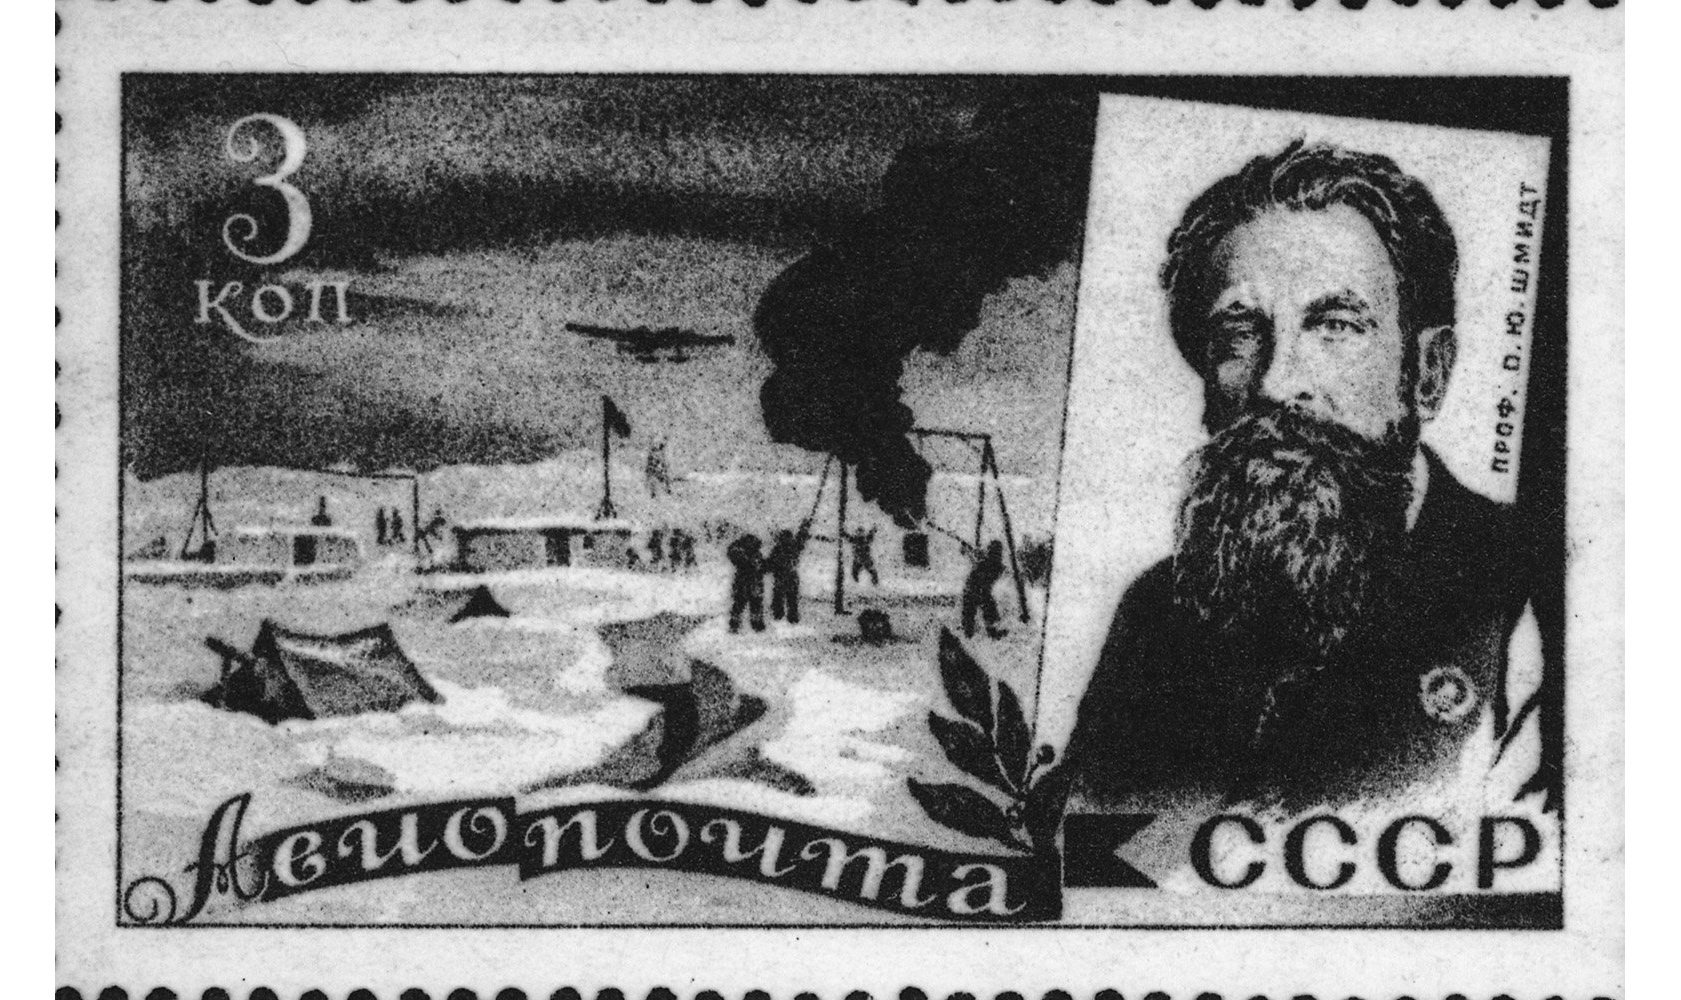 A Soviet postage stamp with Otto Schmidt devoted to the exploration of the Arctic and the Antarctic. Reproduction